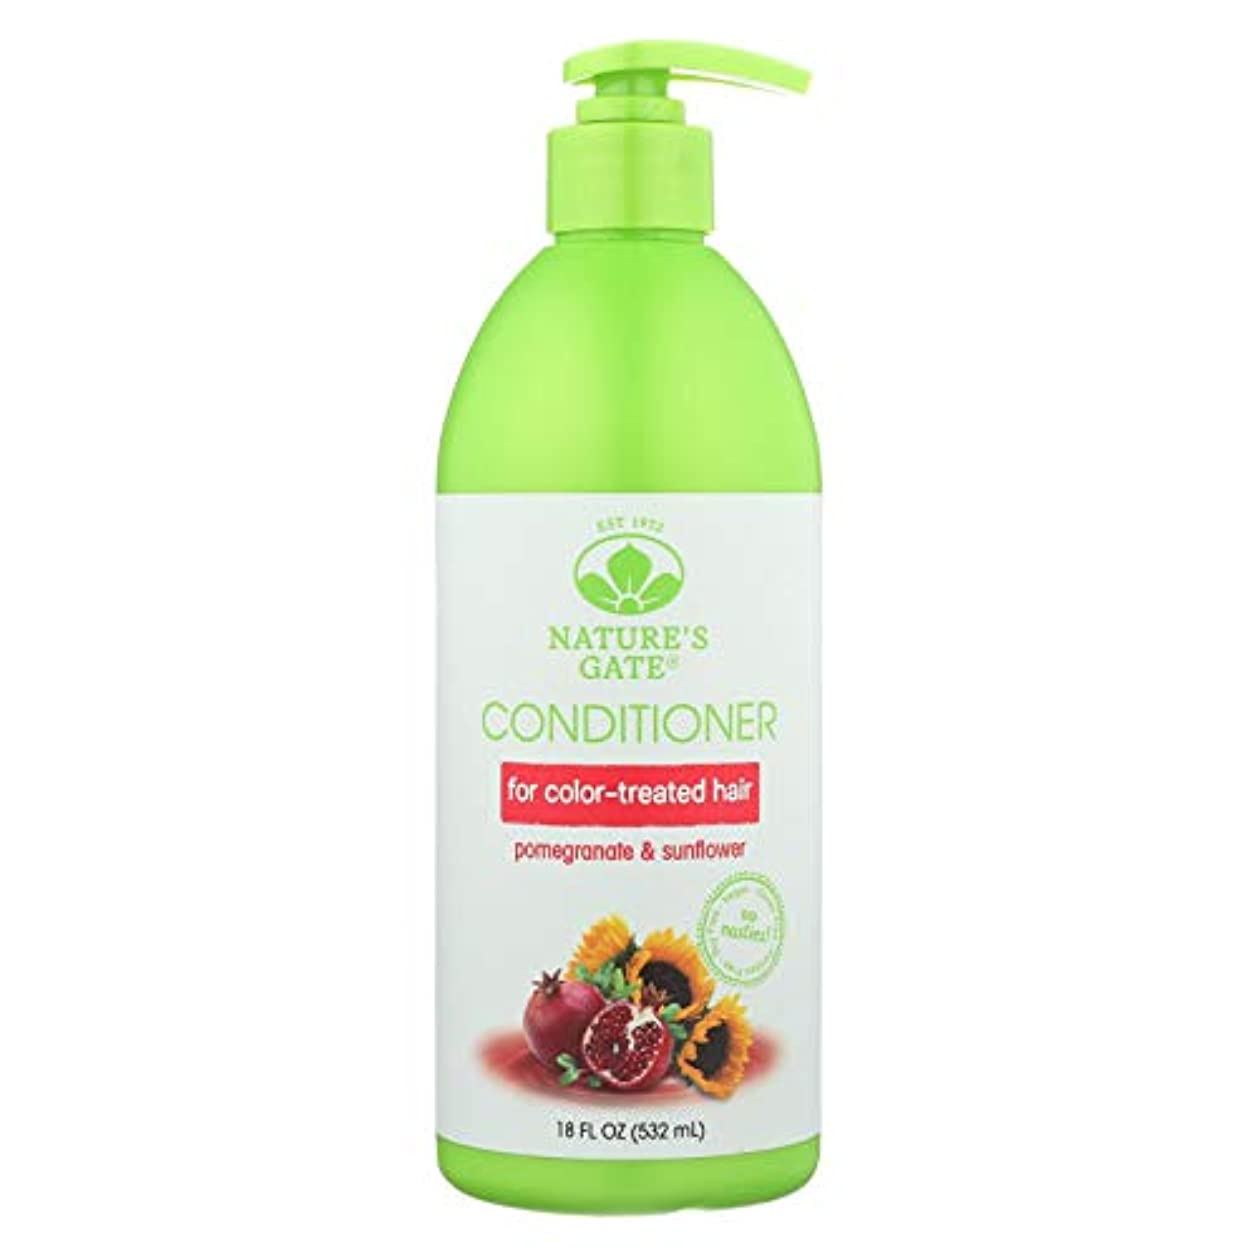 レモン海嶺故国Nature's Gate, Conditioner, Hair Defense, Pomegranate Sunflower, 18 fl oz (532 ml)